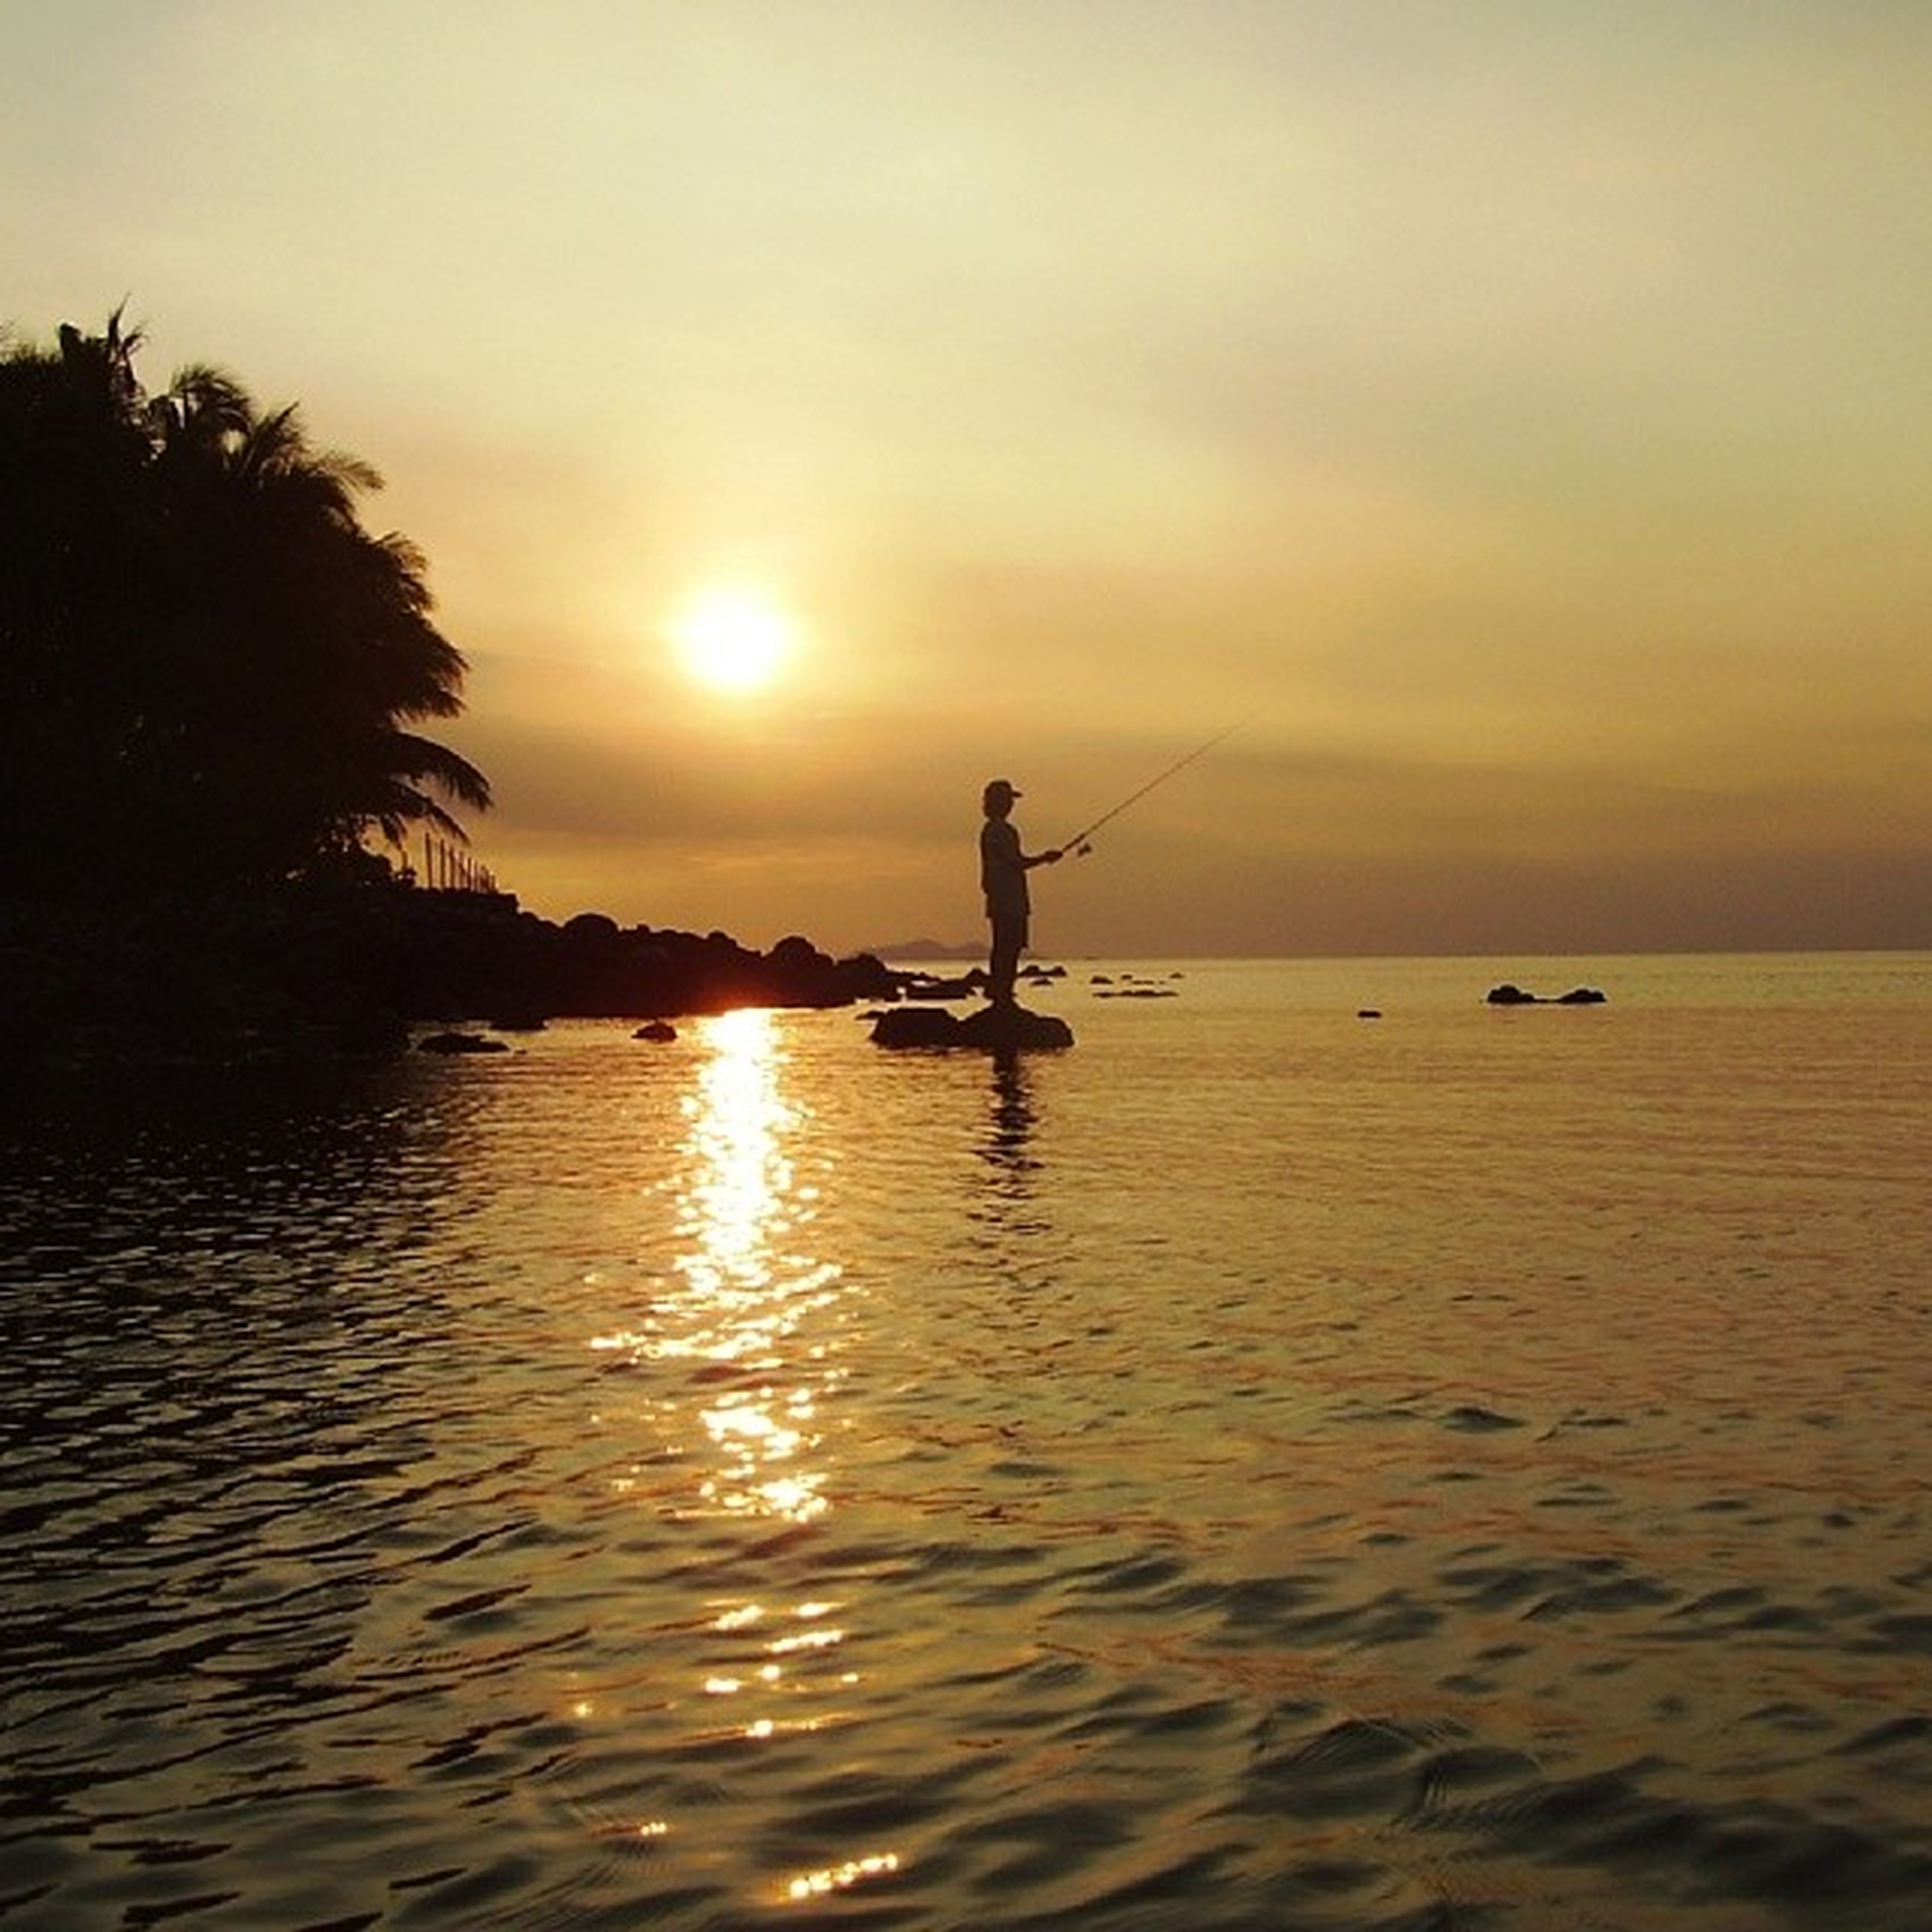 sunset, water, sun, sea, silhouette, scenics, tranquility, tranquil scene, waterfront, sky, nautical vessel, beauty in nature, reflection, transportation, orange color, nature, boat, idyllic, horizon over water, mode of transport